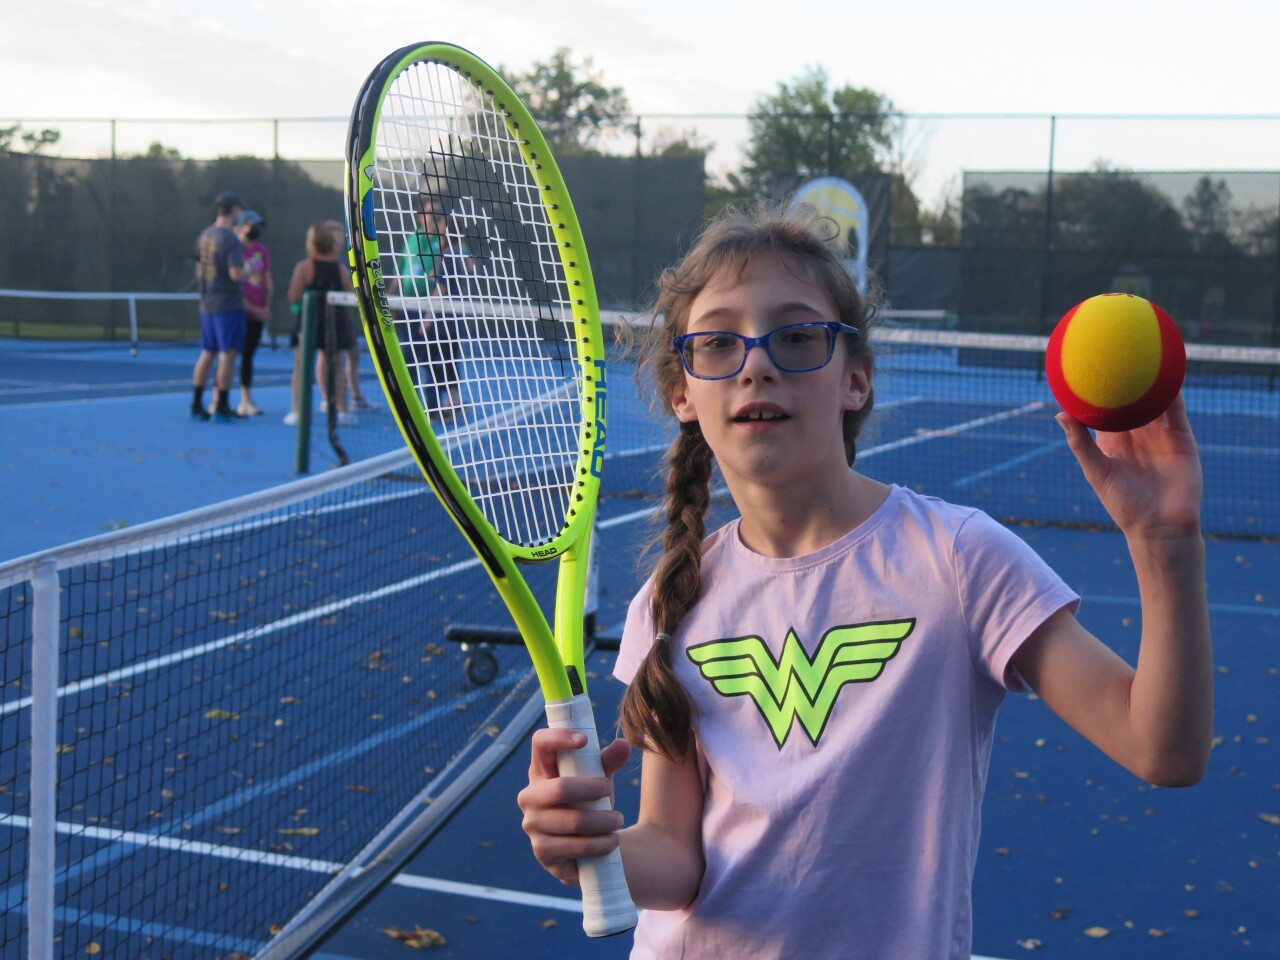 Kaya Naser poses with a tennis racquet and ball on Oct. 11, 2021. Her long, dark hair is in braids, and she's wearing a pink Wonder Woman t-shirt.